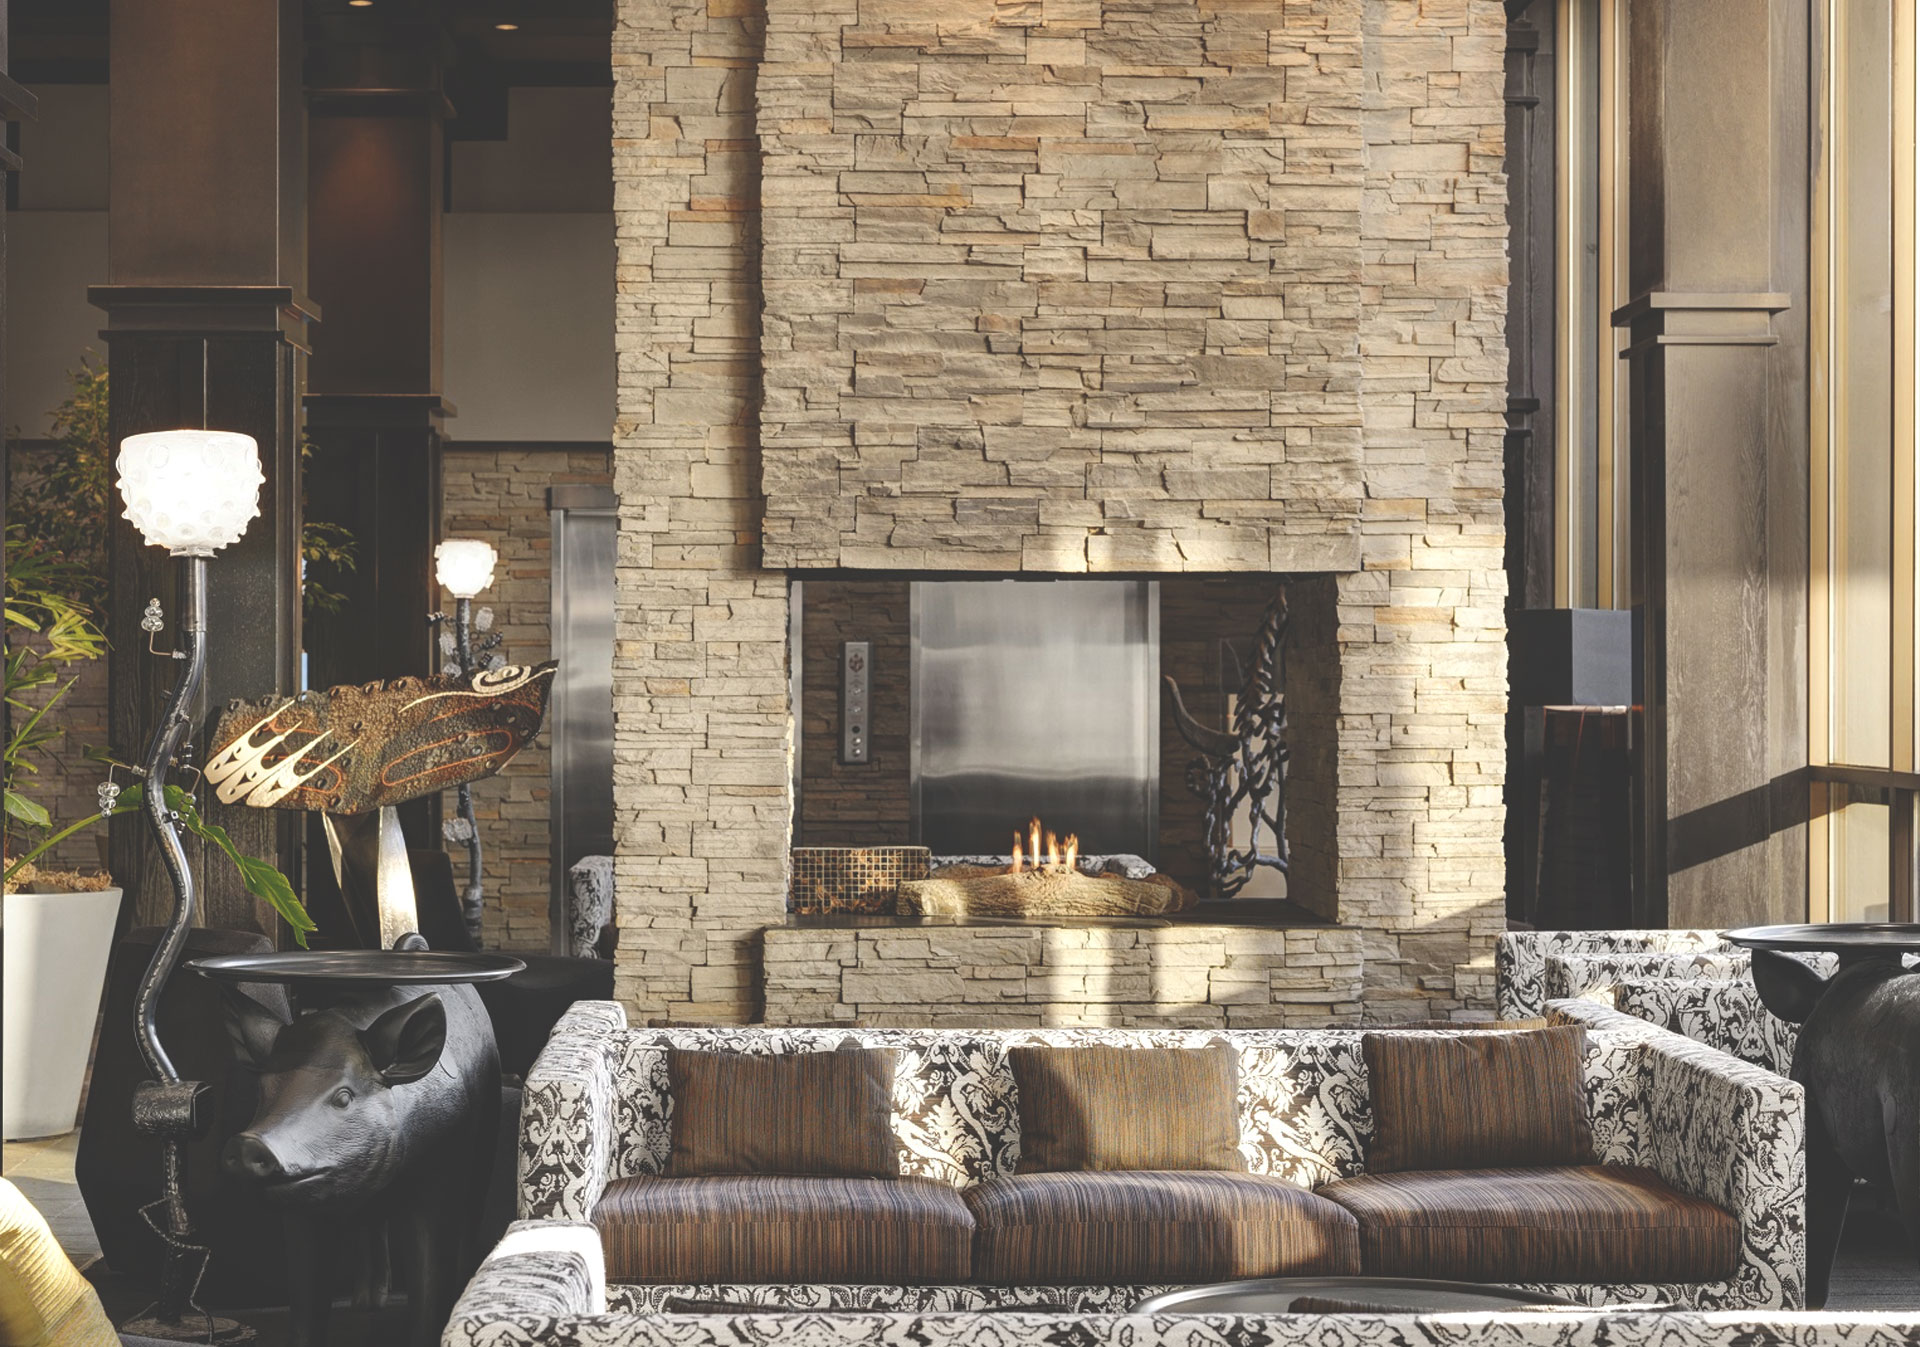 Warm up by the fire at Hotel Arts in Calgary.